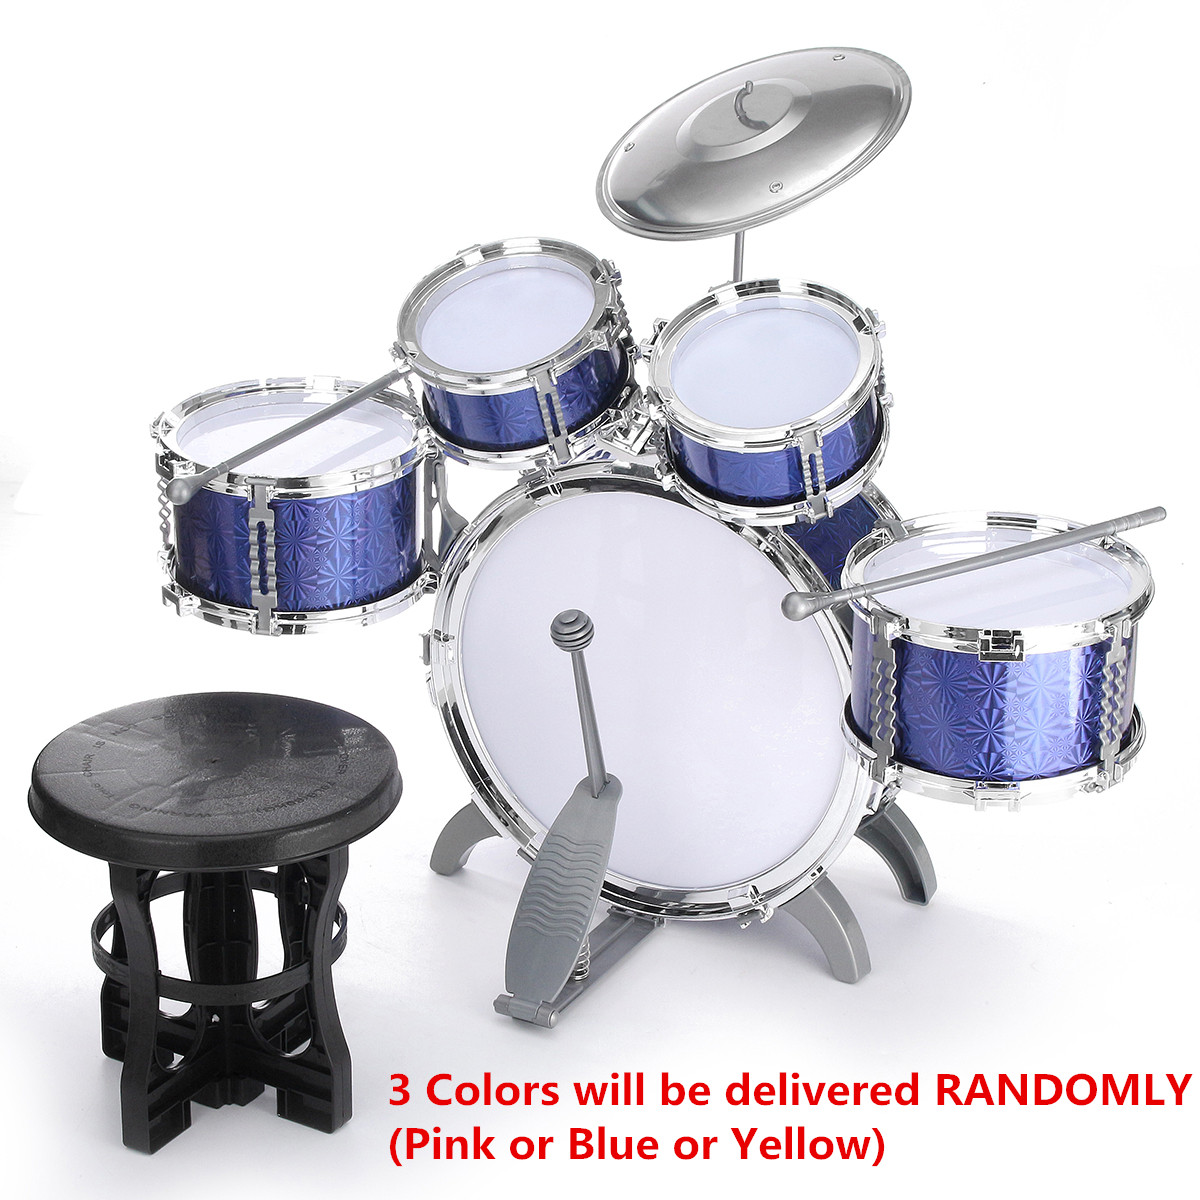 Toy Drum Set for Children 11 Piece Kid's Musical Instrument Drum Playset w/ 6 Drums, Cymbal, Chair, Kick Pedal, Drumsticks - Random Color